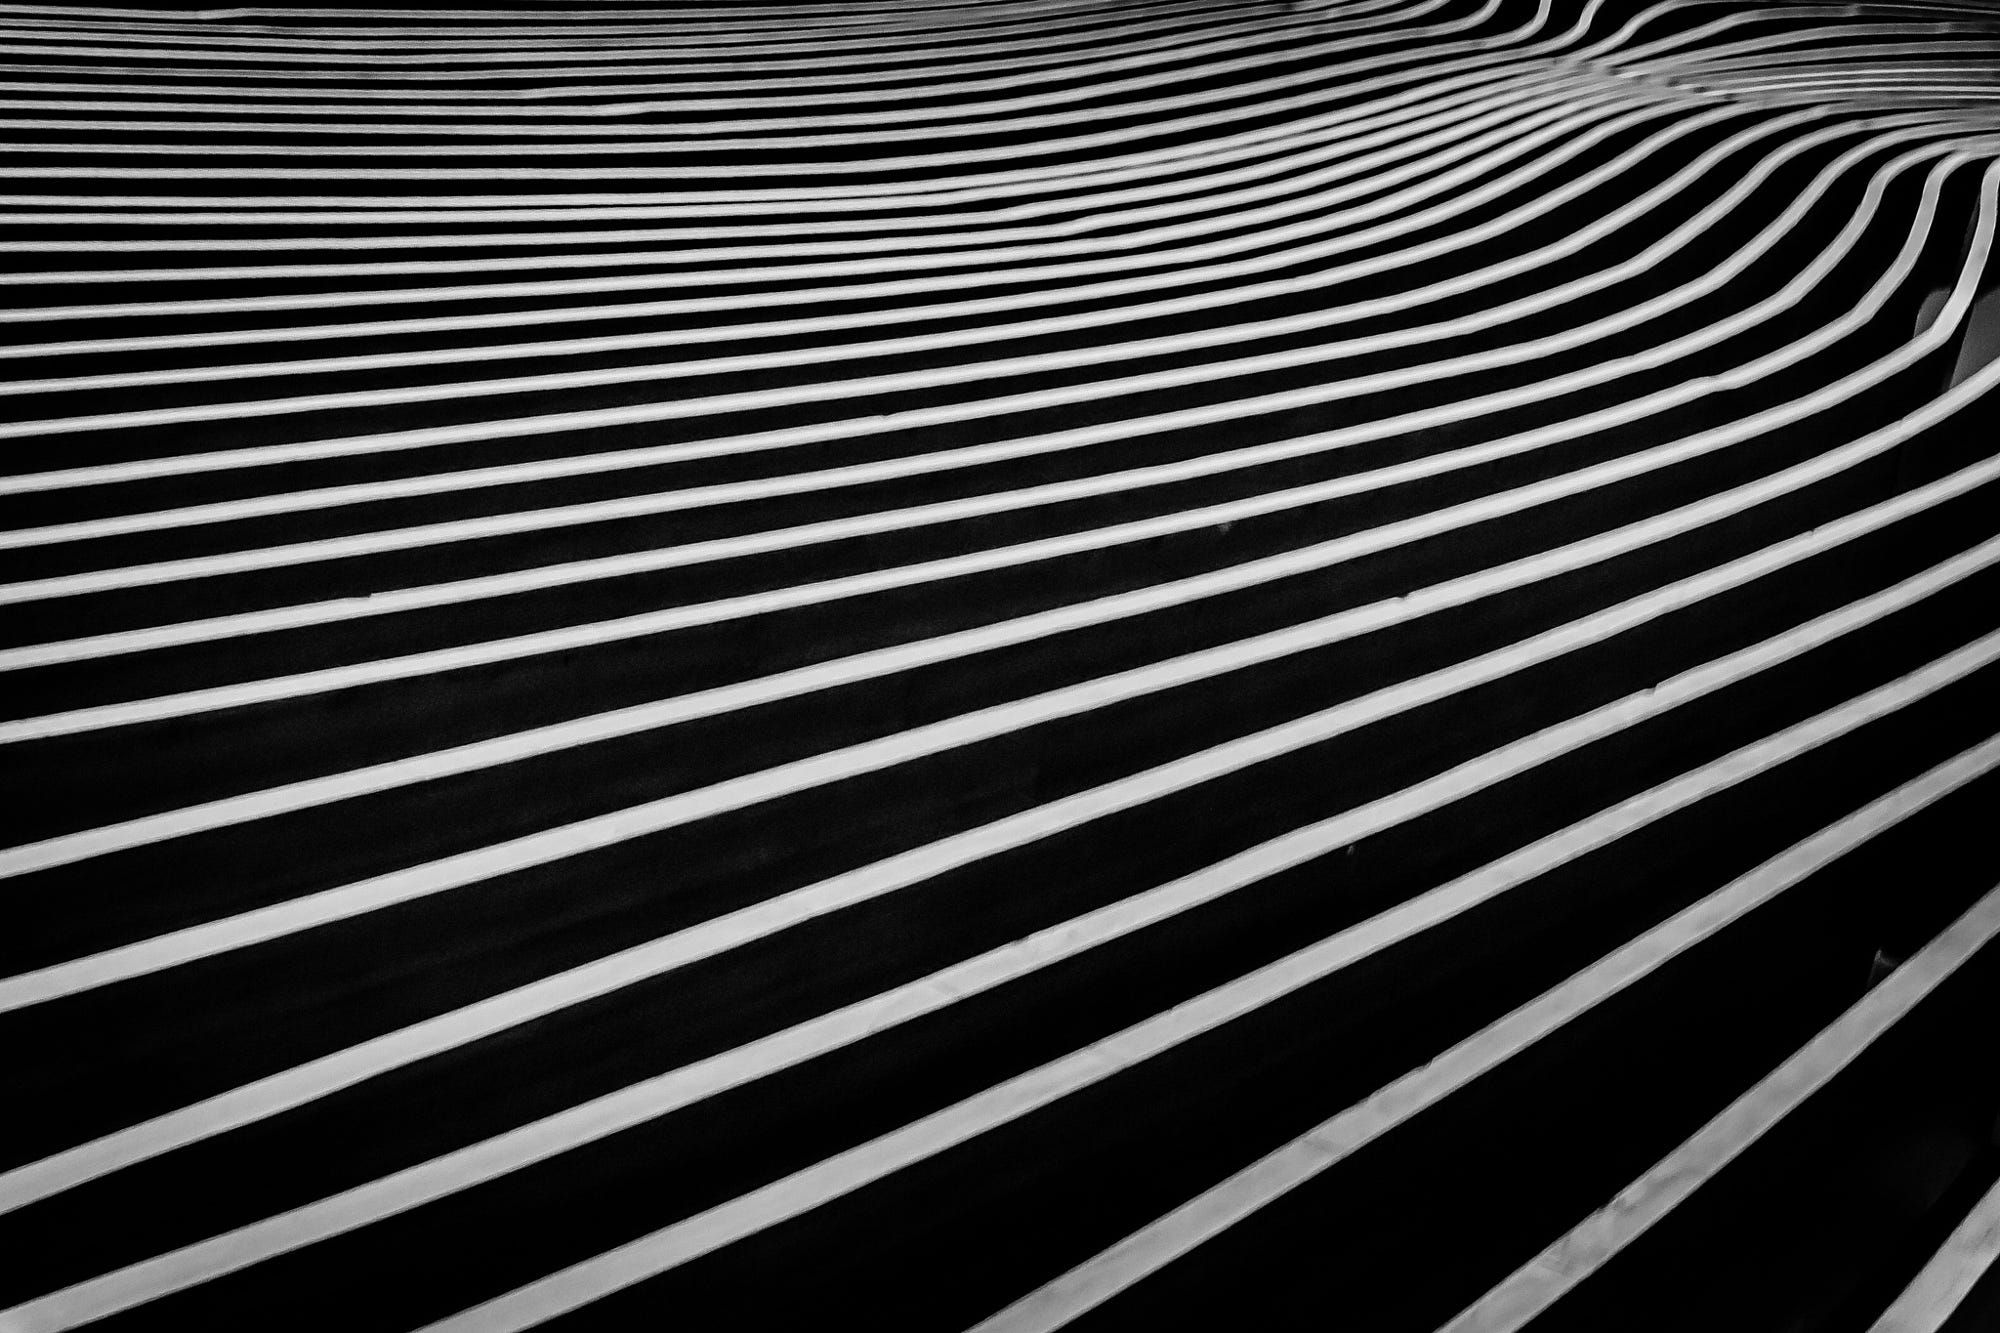 Urban Exploration: Lines by Ale78ssio https://t.co/4C4IirUn1U | #500px #photography #photos https://t.co/ndKYR9NBdL #followme #photography